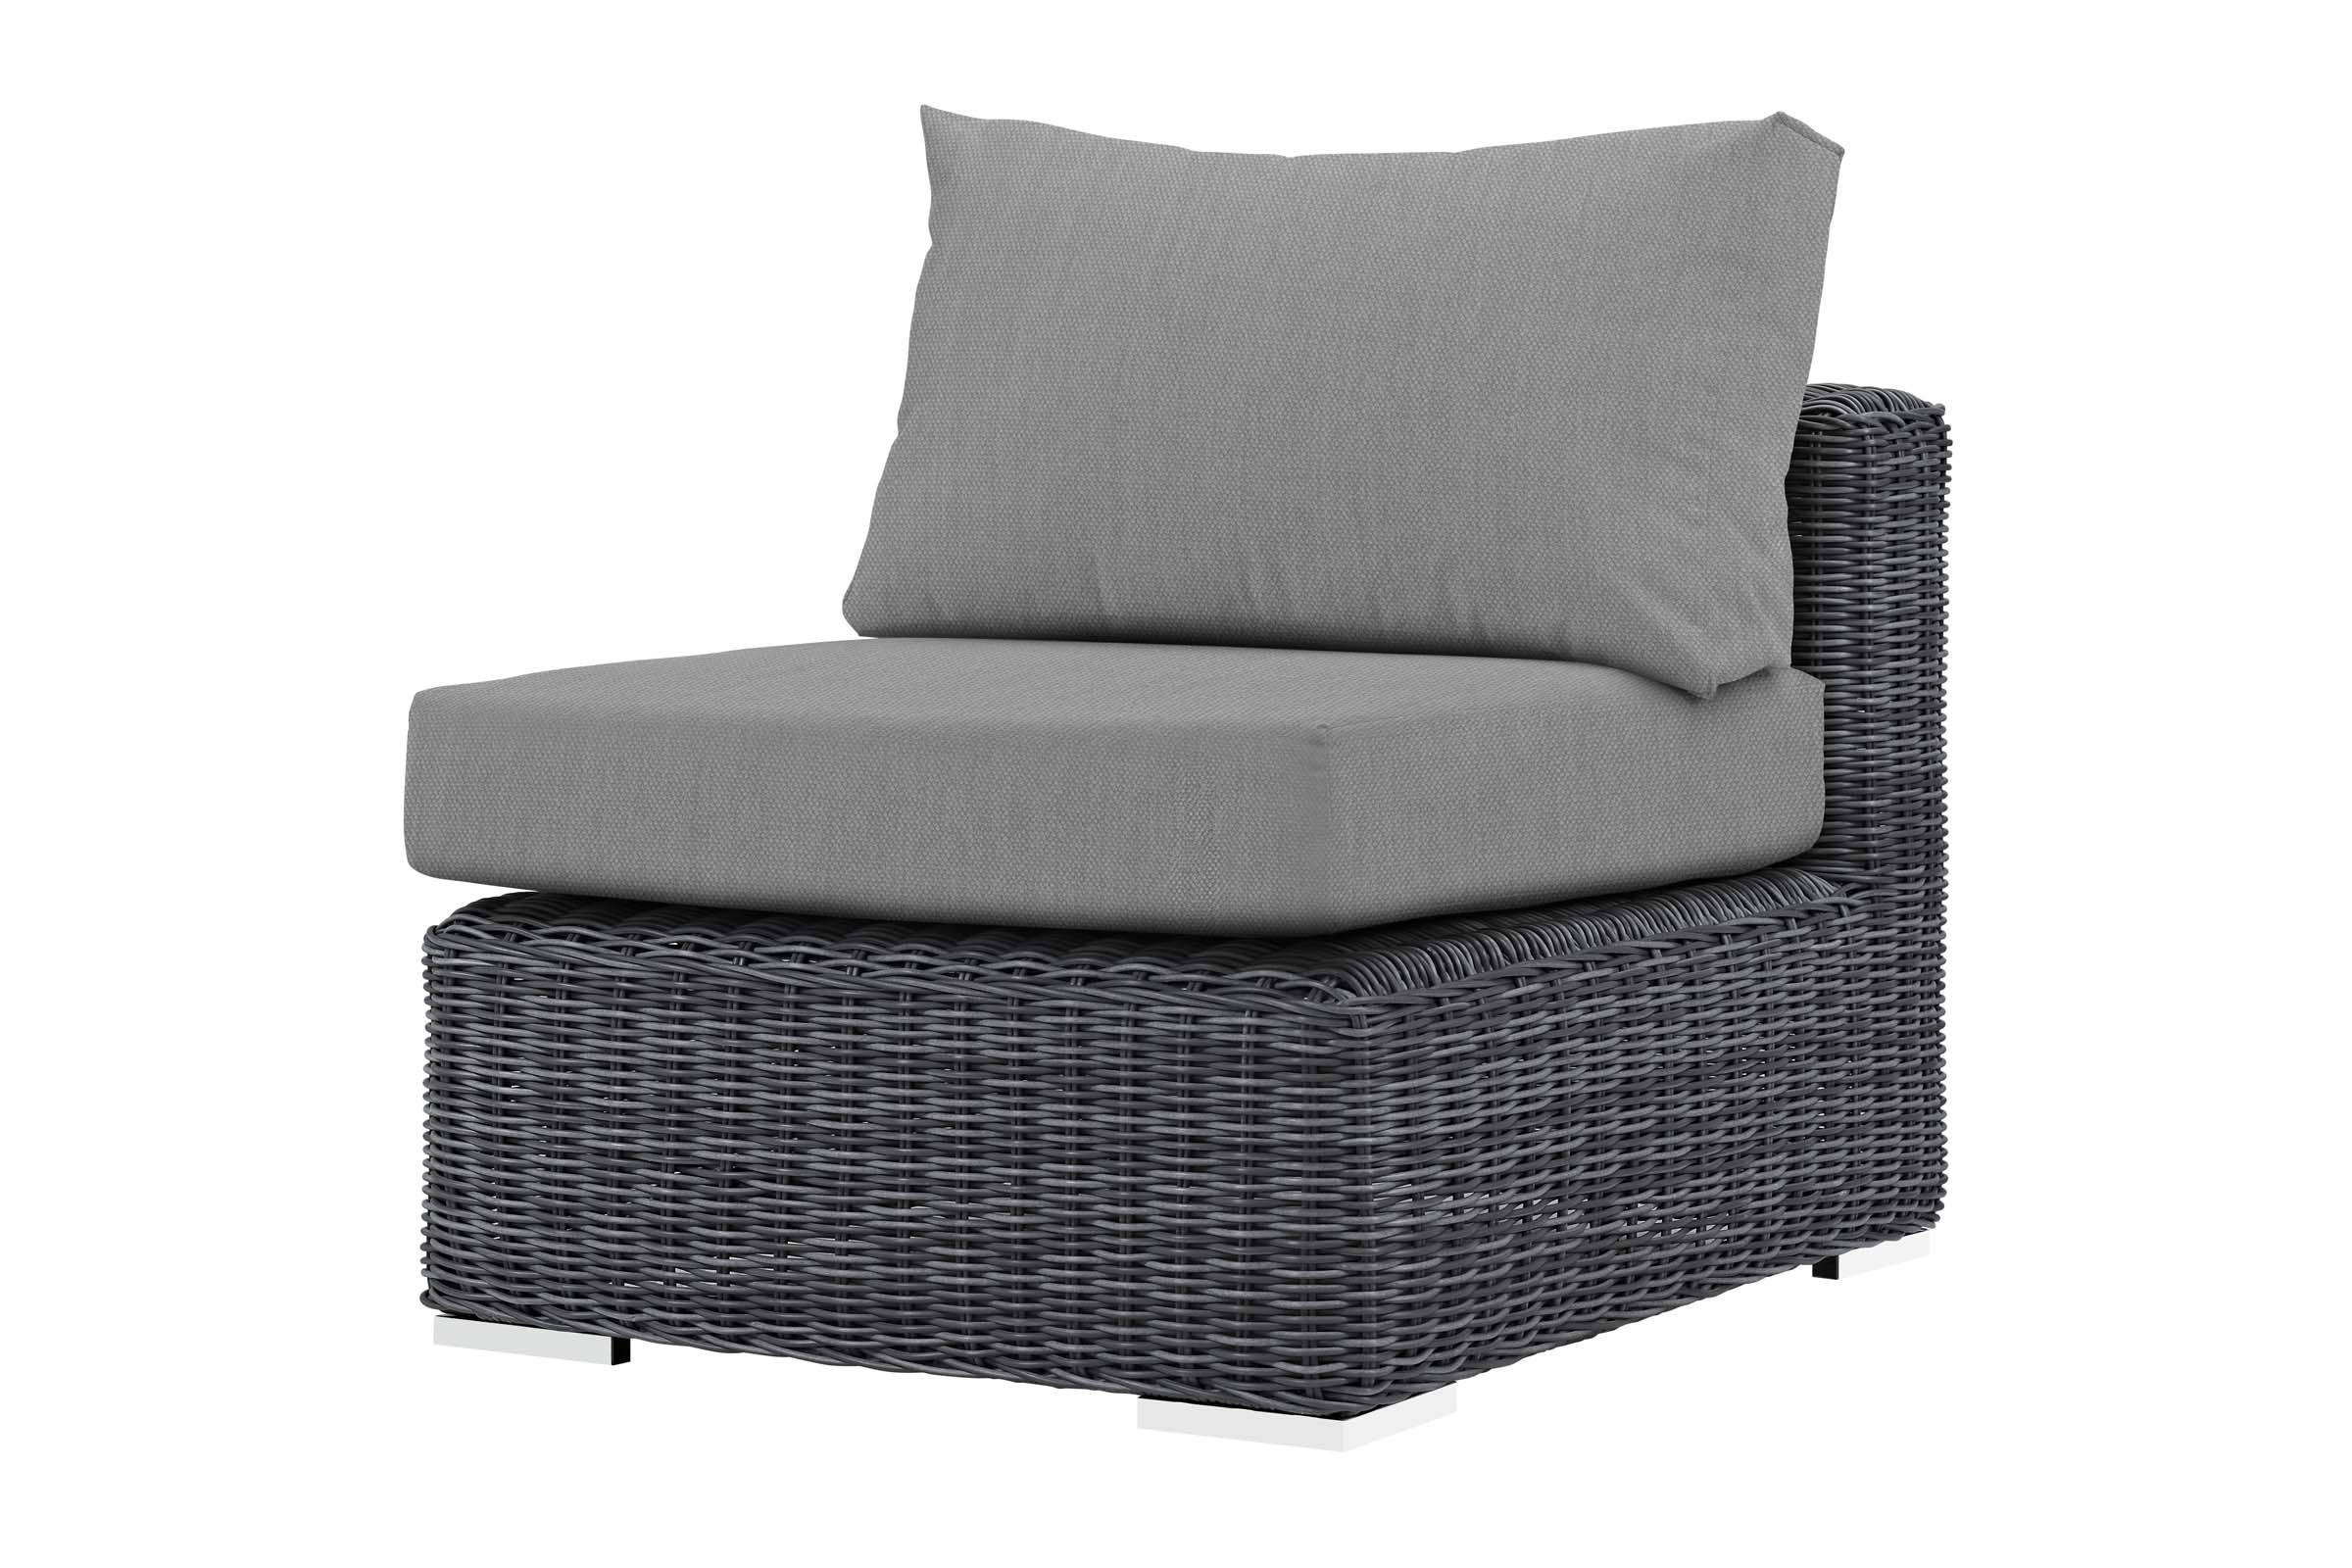 Famous Rossville Outdoor Patio Sofas With Cushions Intended For Summon Outdoor Patio Wicker Rattan Sunbrella Armless In Grey (View 25 of 25)